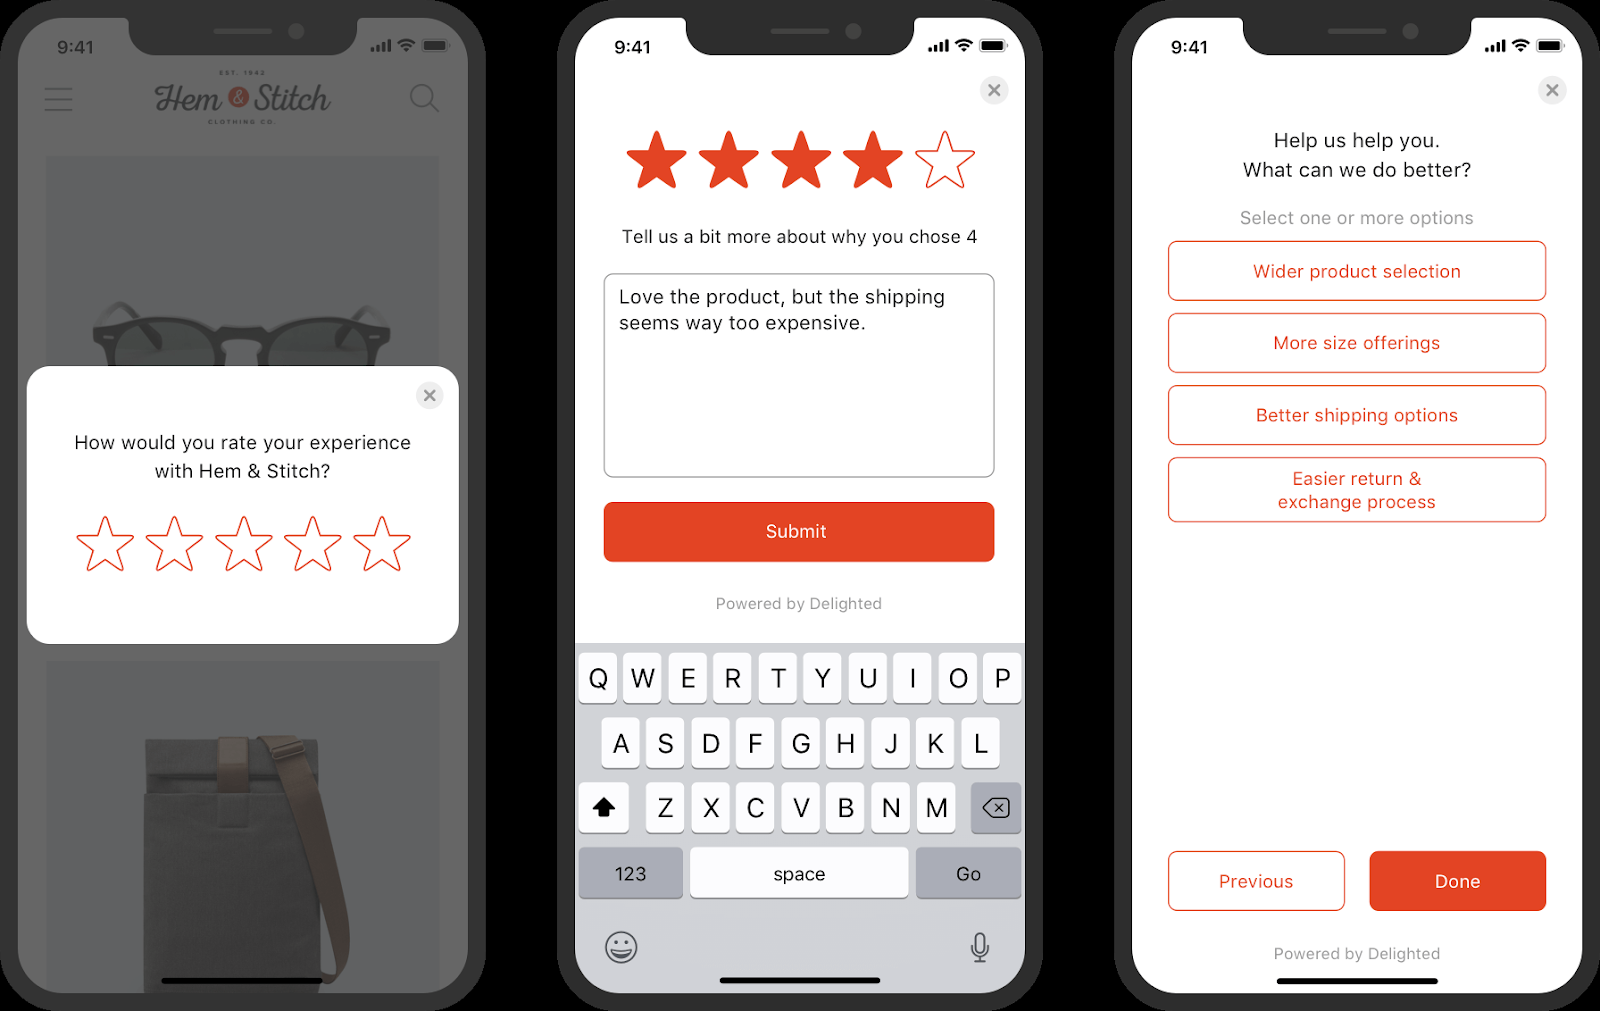 Targeted polls examples in mobile appications